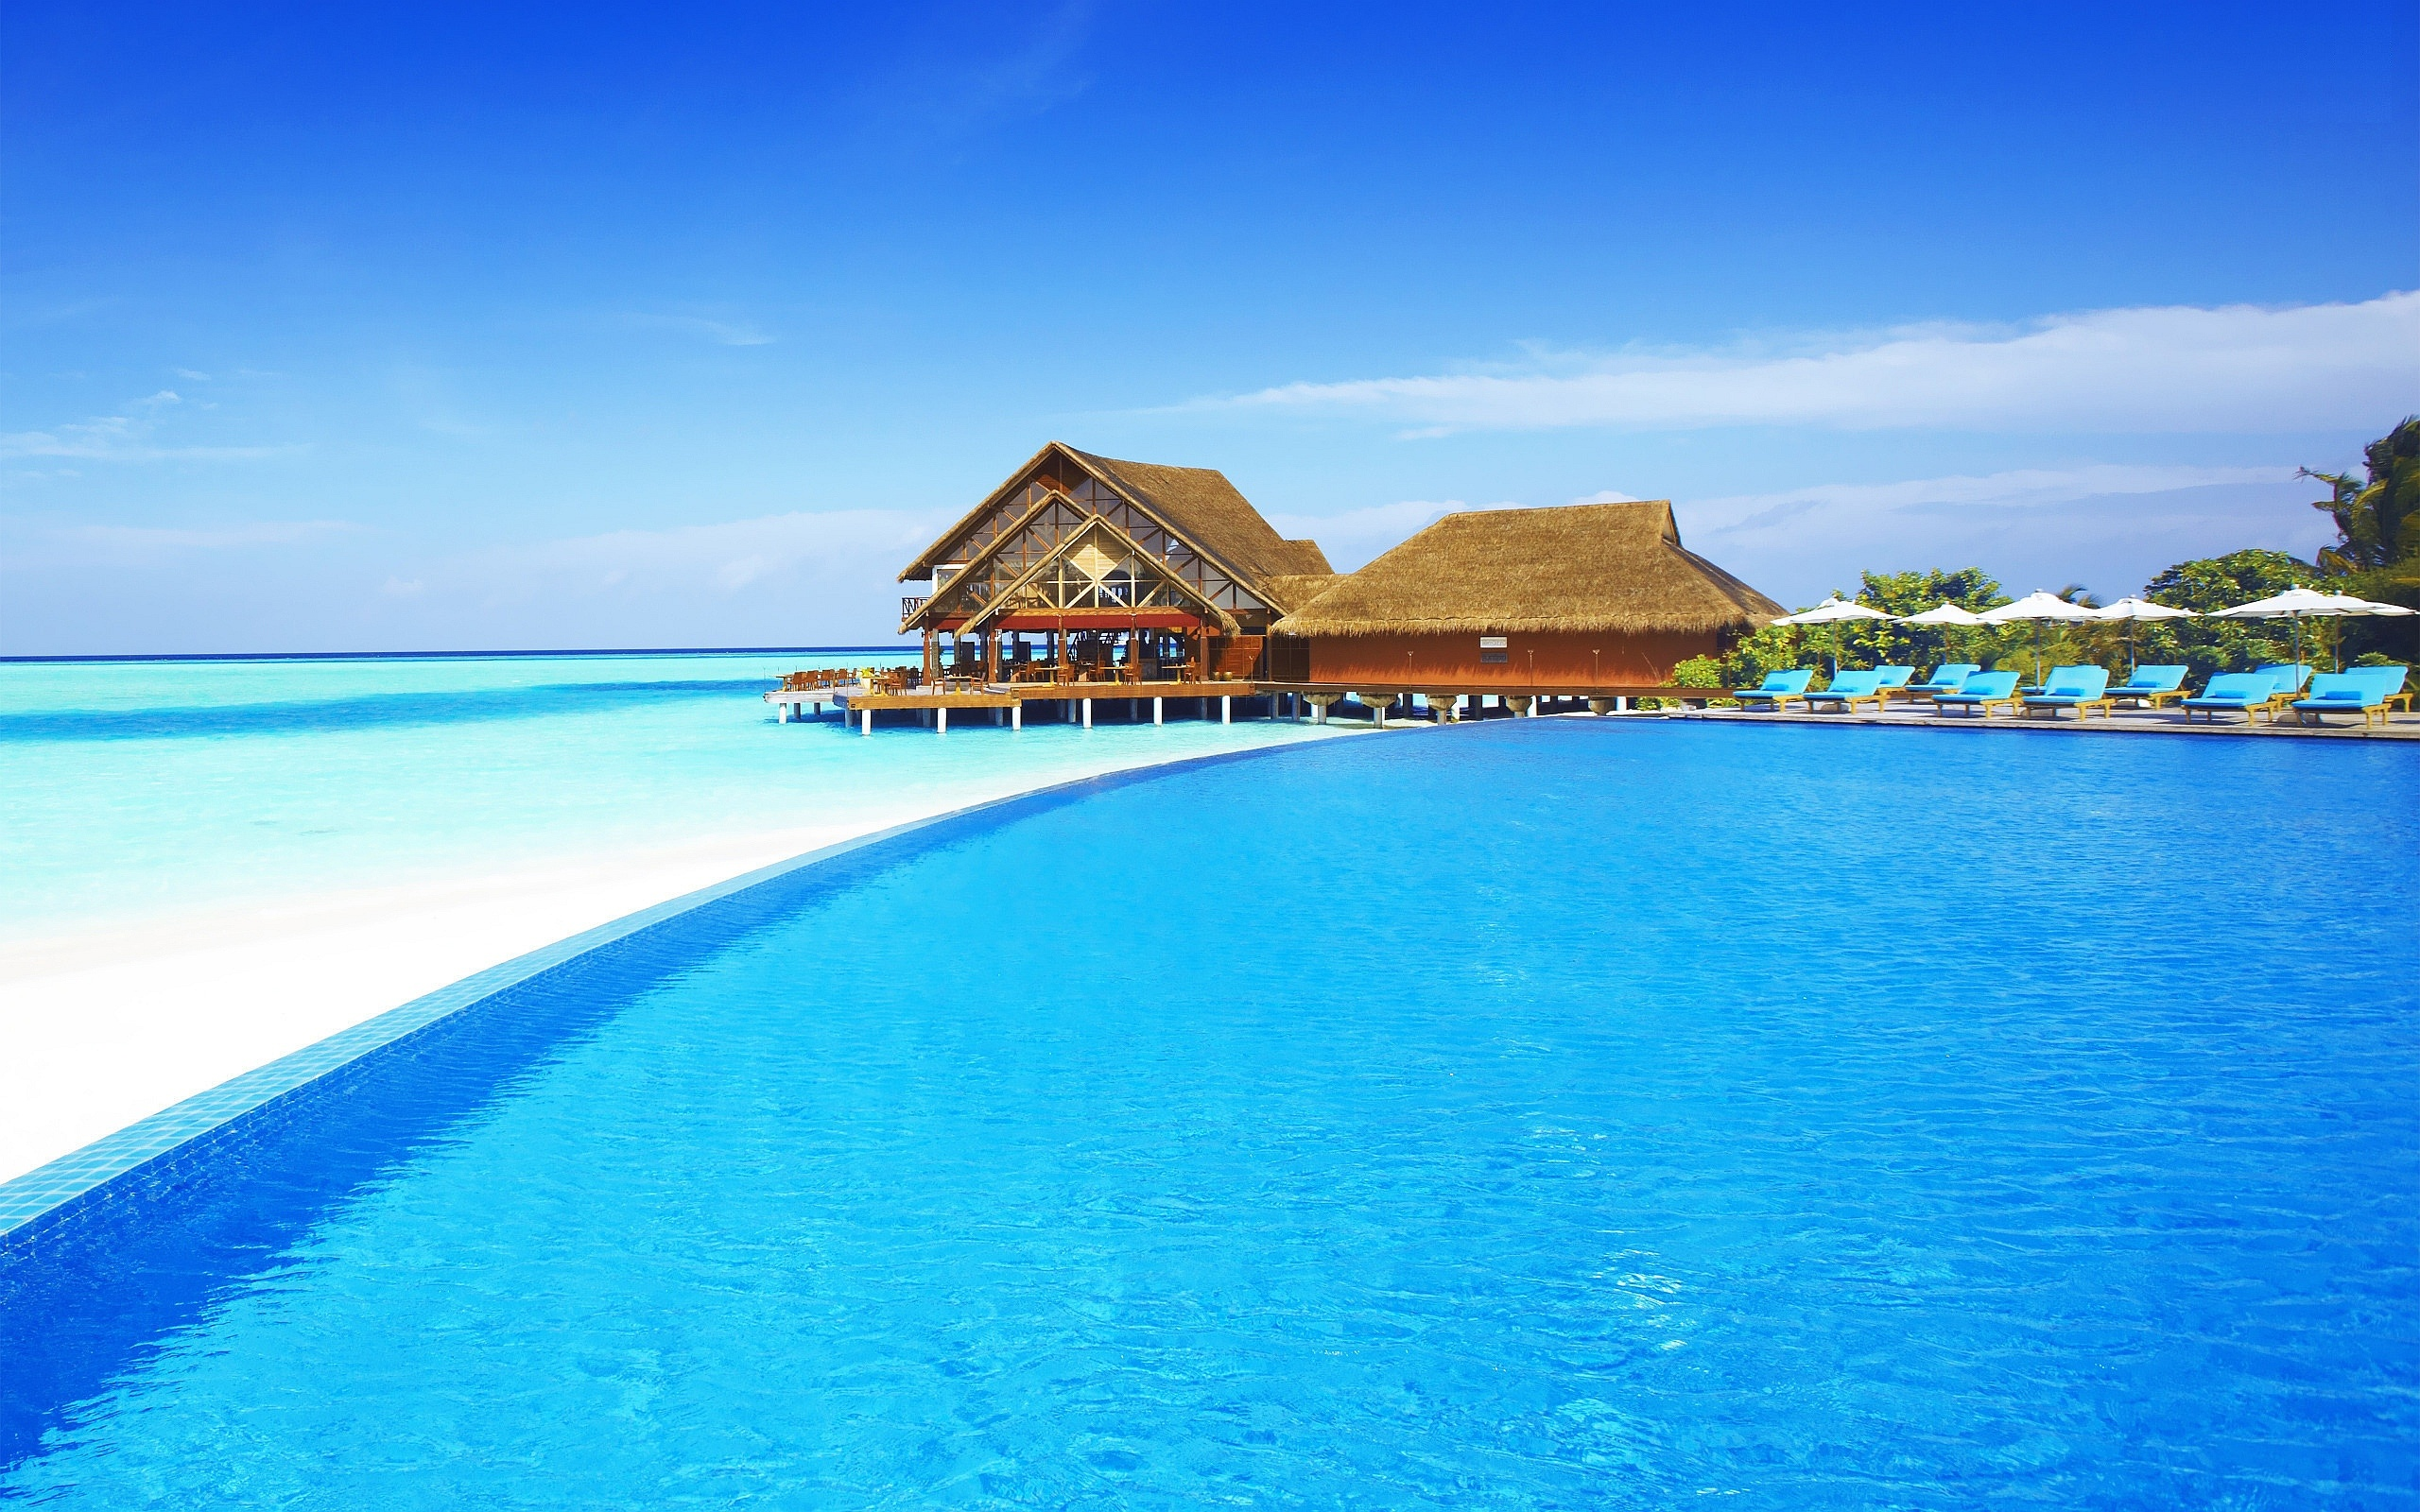 Maldives Beach Wallpapers HD 2560x1600